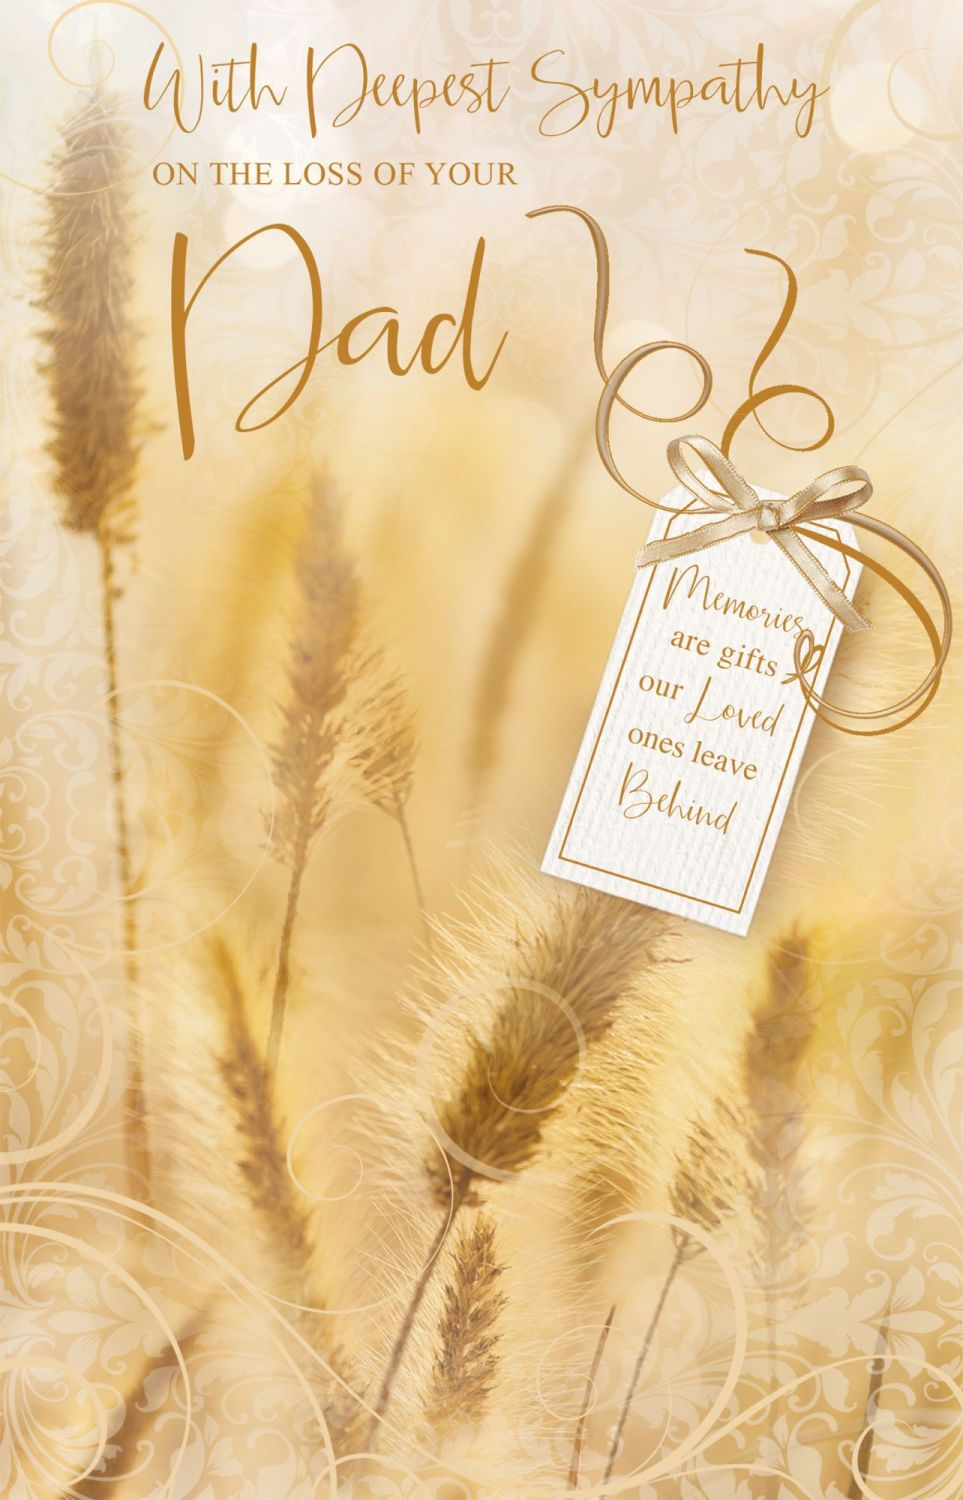 Dad Sympathy Cards - MEMORIES Are GIFTS Our LOVED Ones LEAVE Behind - LOSS